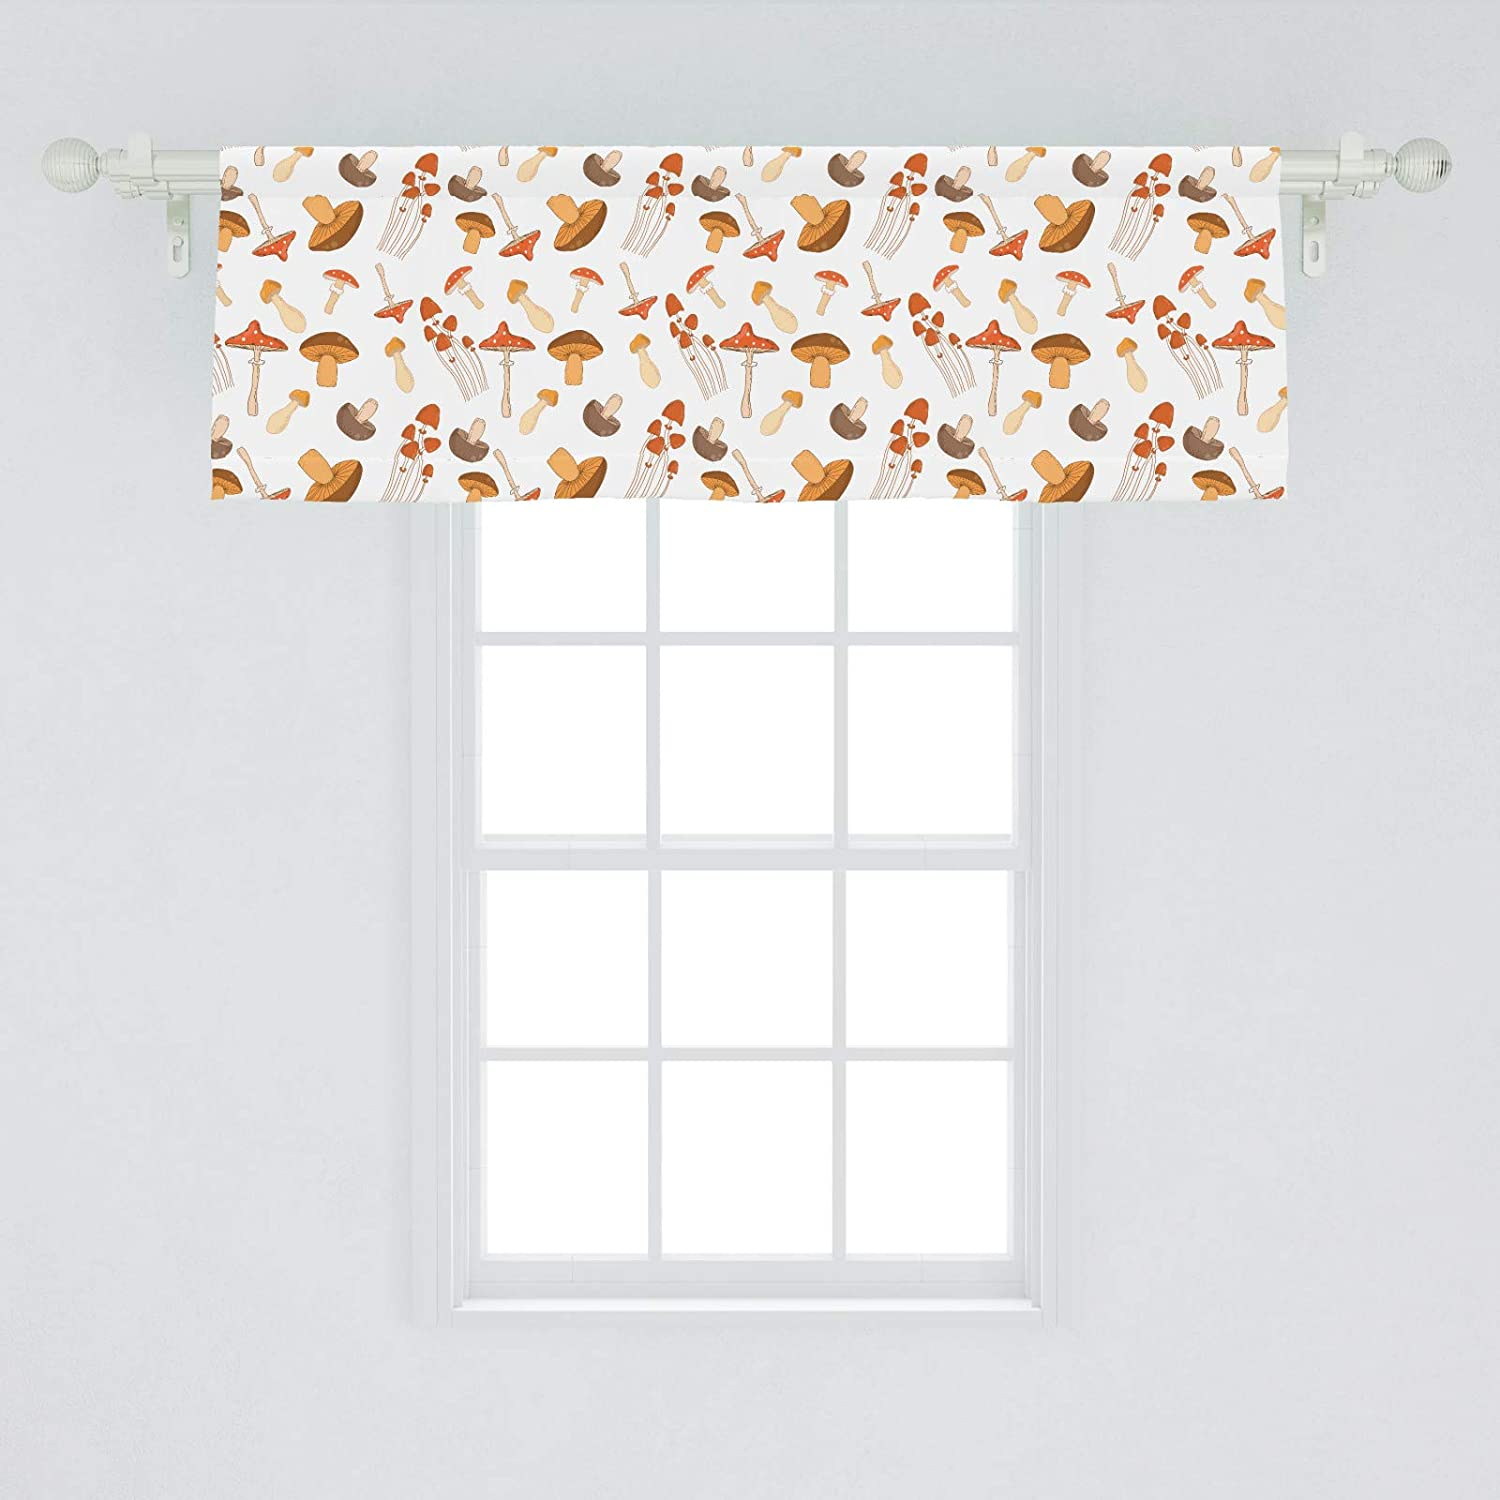 Ambesonne Autumn Window Valance, Colorful Mushroom Pattern Woodland Illustration with Various Fungi Types, Curtain Valance for Kitchen Bedroom Decor with Rod Pocket, 54